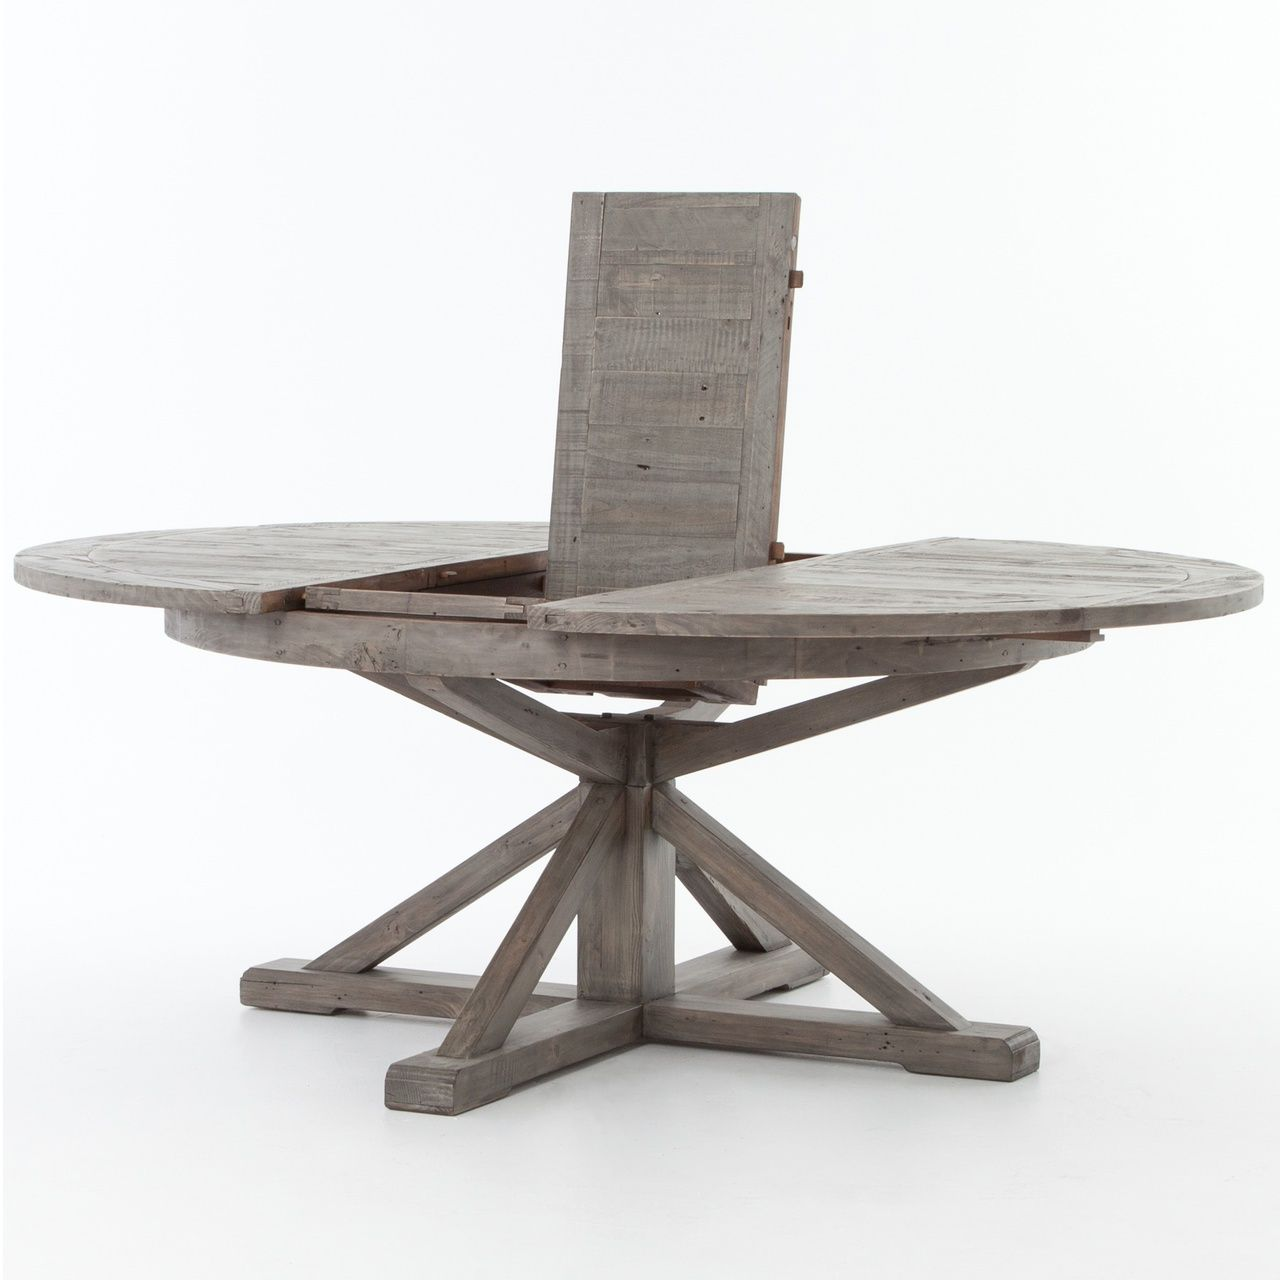 Cintra Reclaimed Wood Extending Round Dining Table 63 Rustic Dining Room Table Decor Rustic Dining Room Table Round Pedestal Dining Table